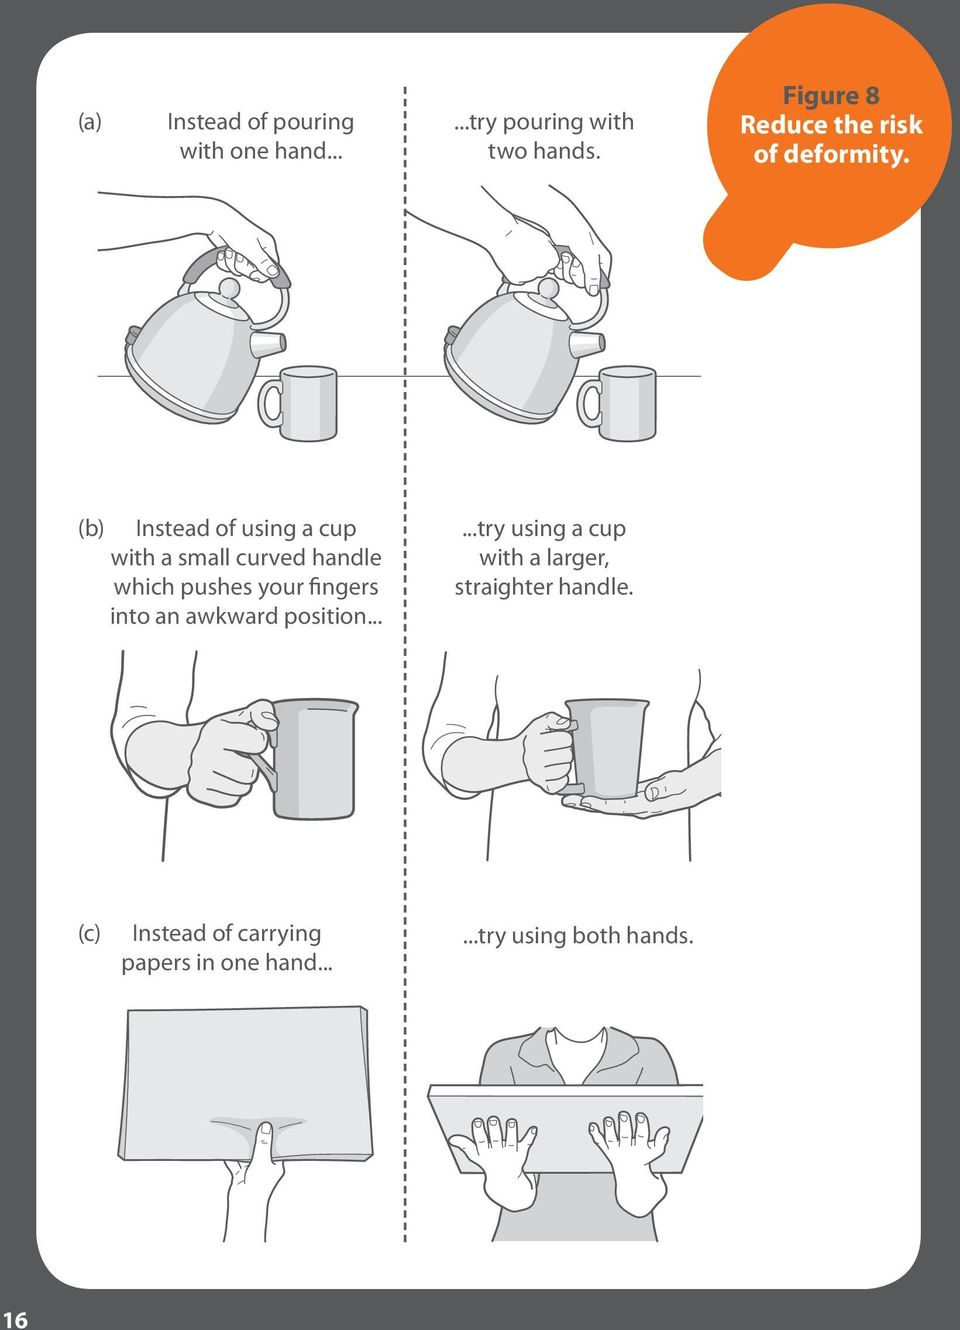 (b) Instead of using a cup with a small curved handle which pushes your fingers into